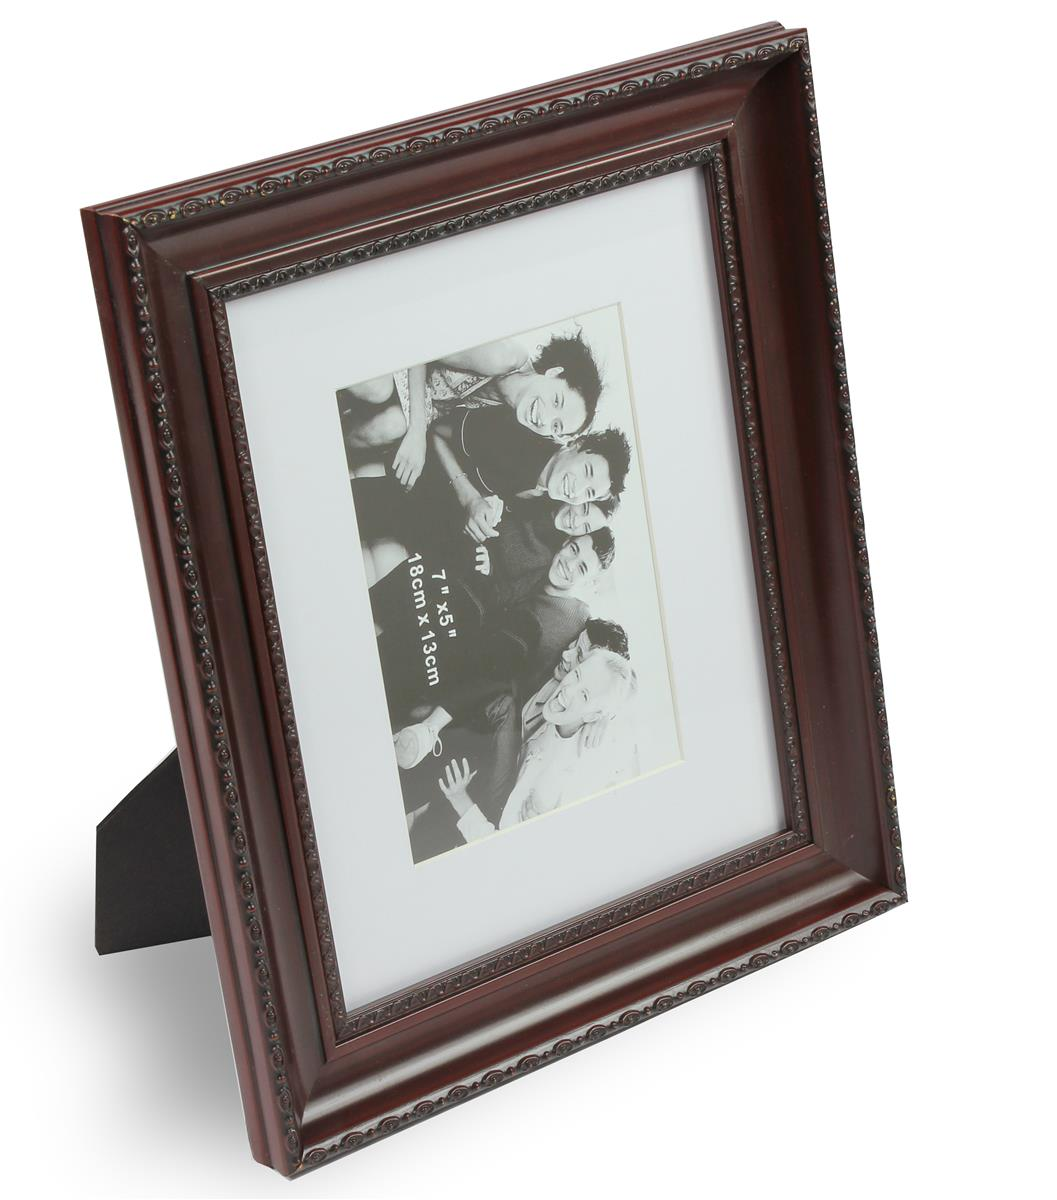 8 x 10 mahogany photo picture frame matted to 5 x 7. Black Bedroom Furniture Sets. Home Design Ideas